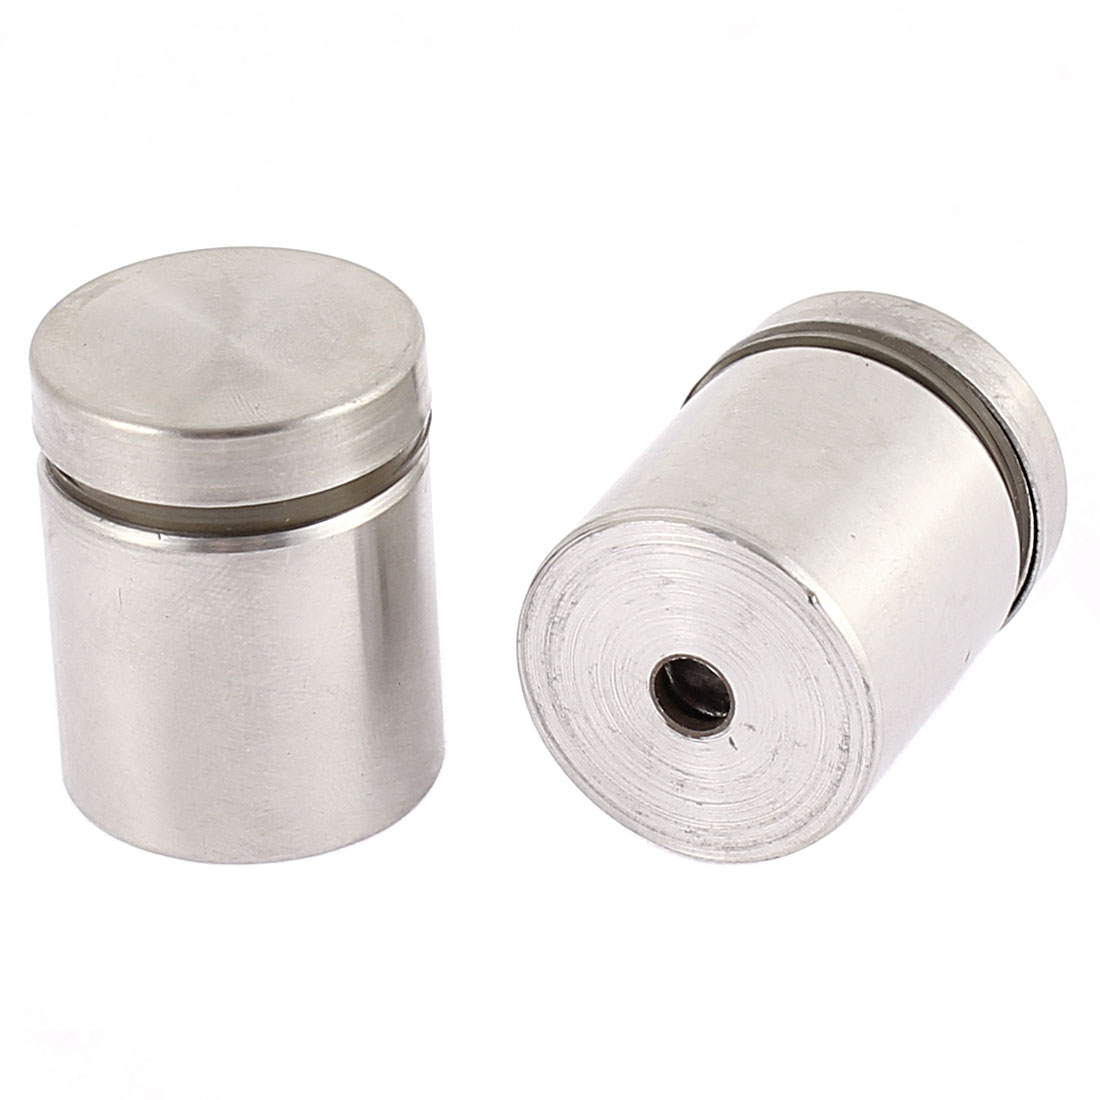 25mm x 30mm Stainless Steel Advertising Nail Glass Standoff Connector 2PCS